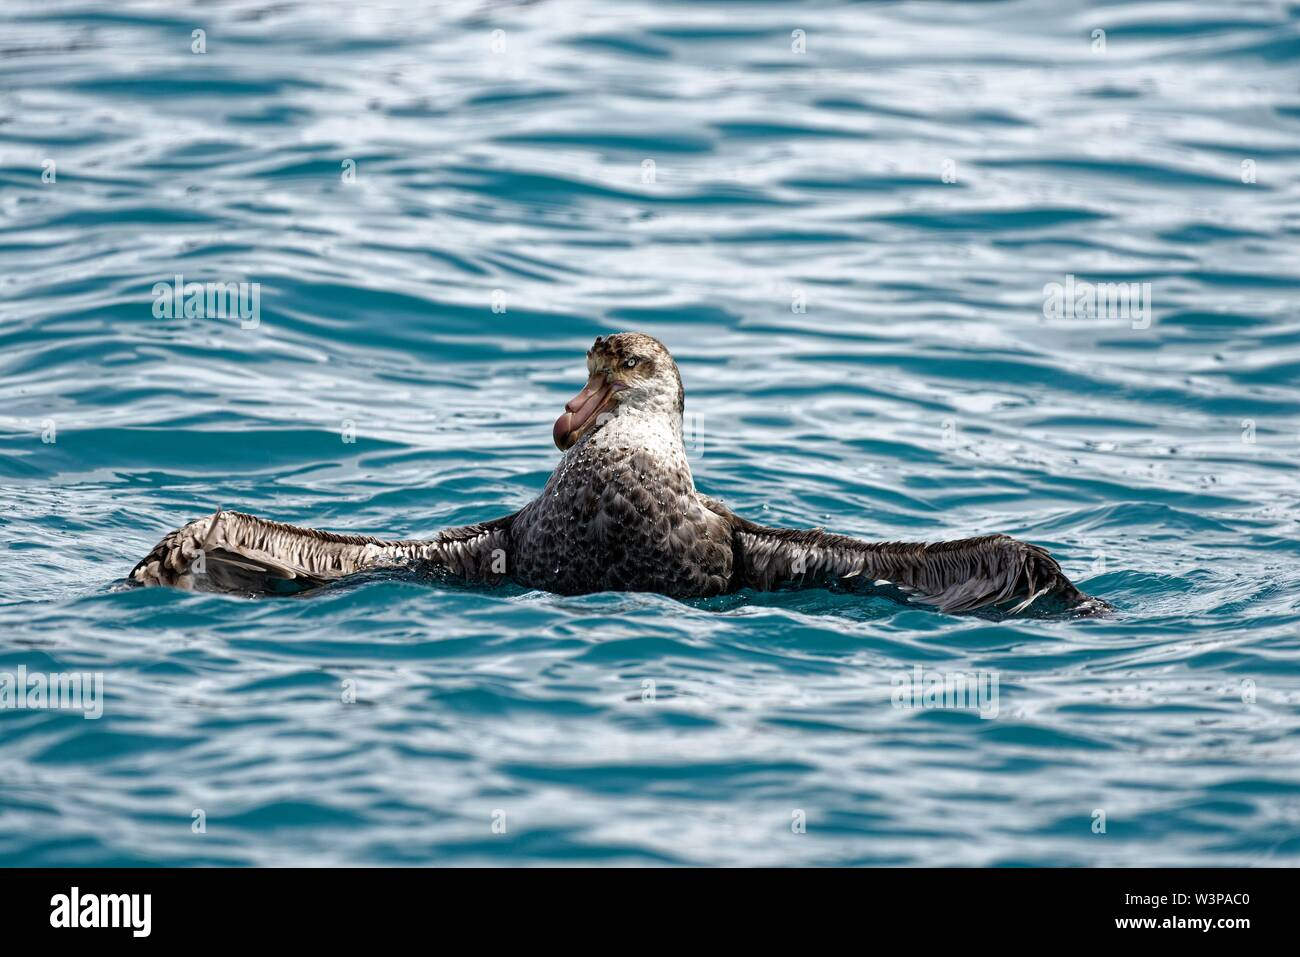 Southern giant petrel (Macronectes giganteus) with extended wings in the South Atlantic off the coast of South Georgia, South Georgia and the South - Stock Image